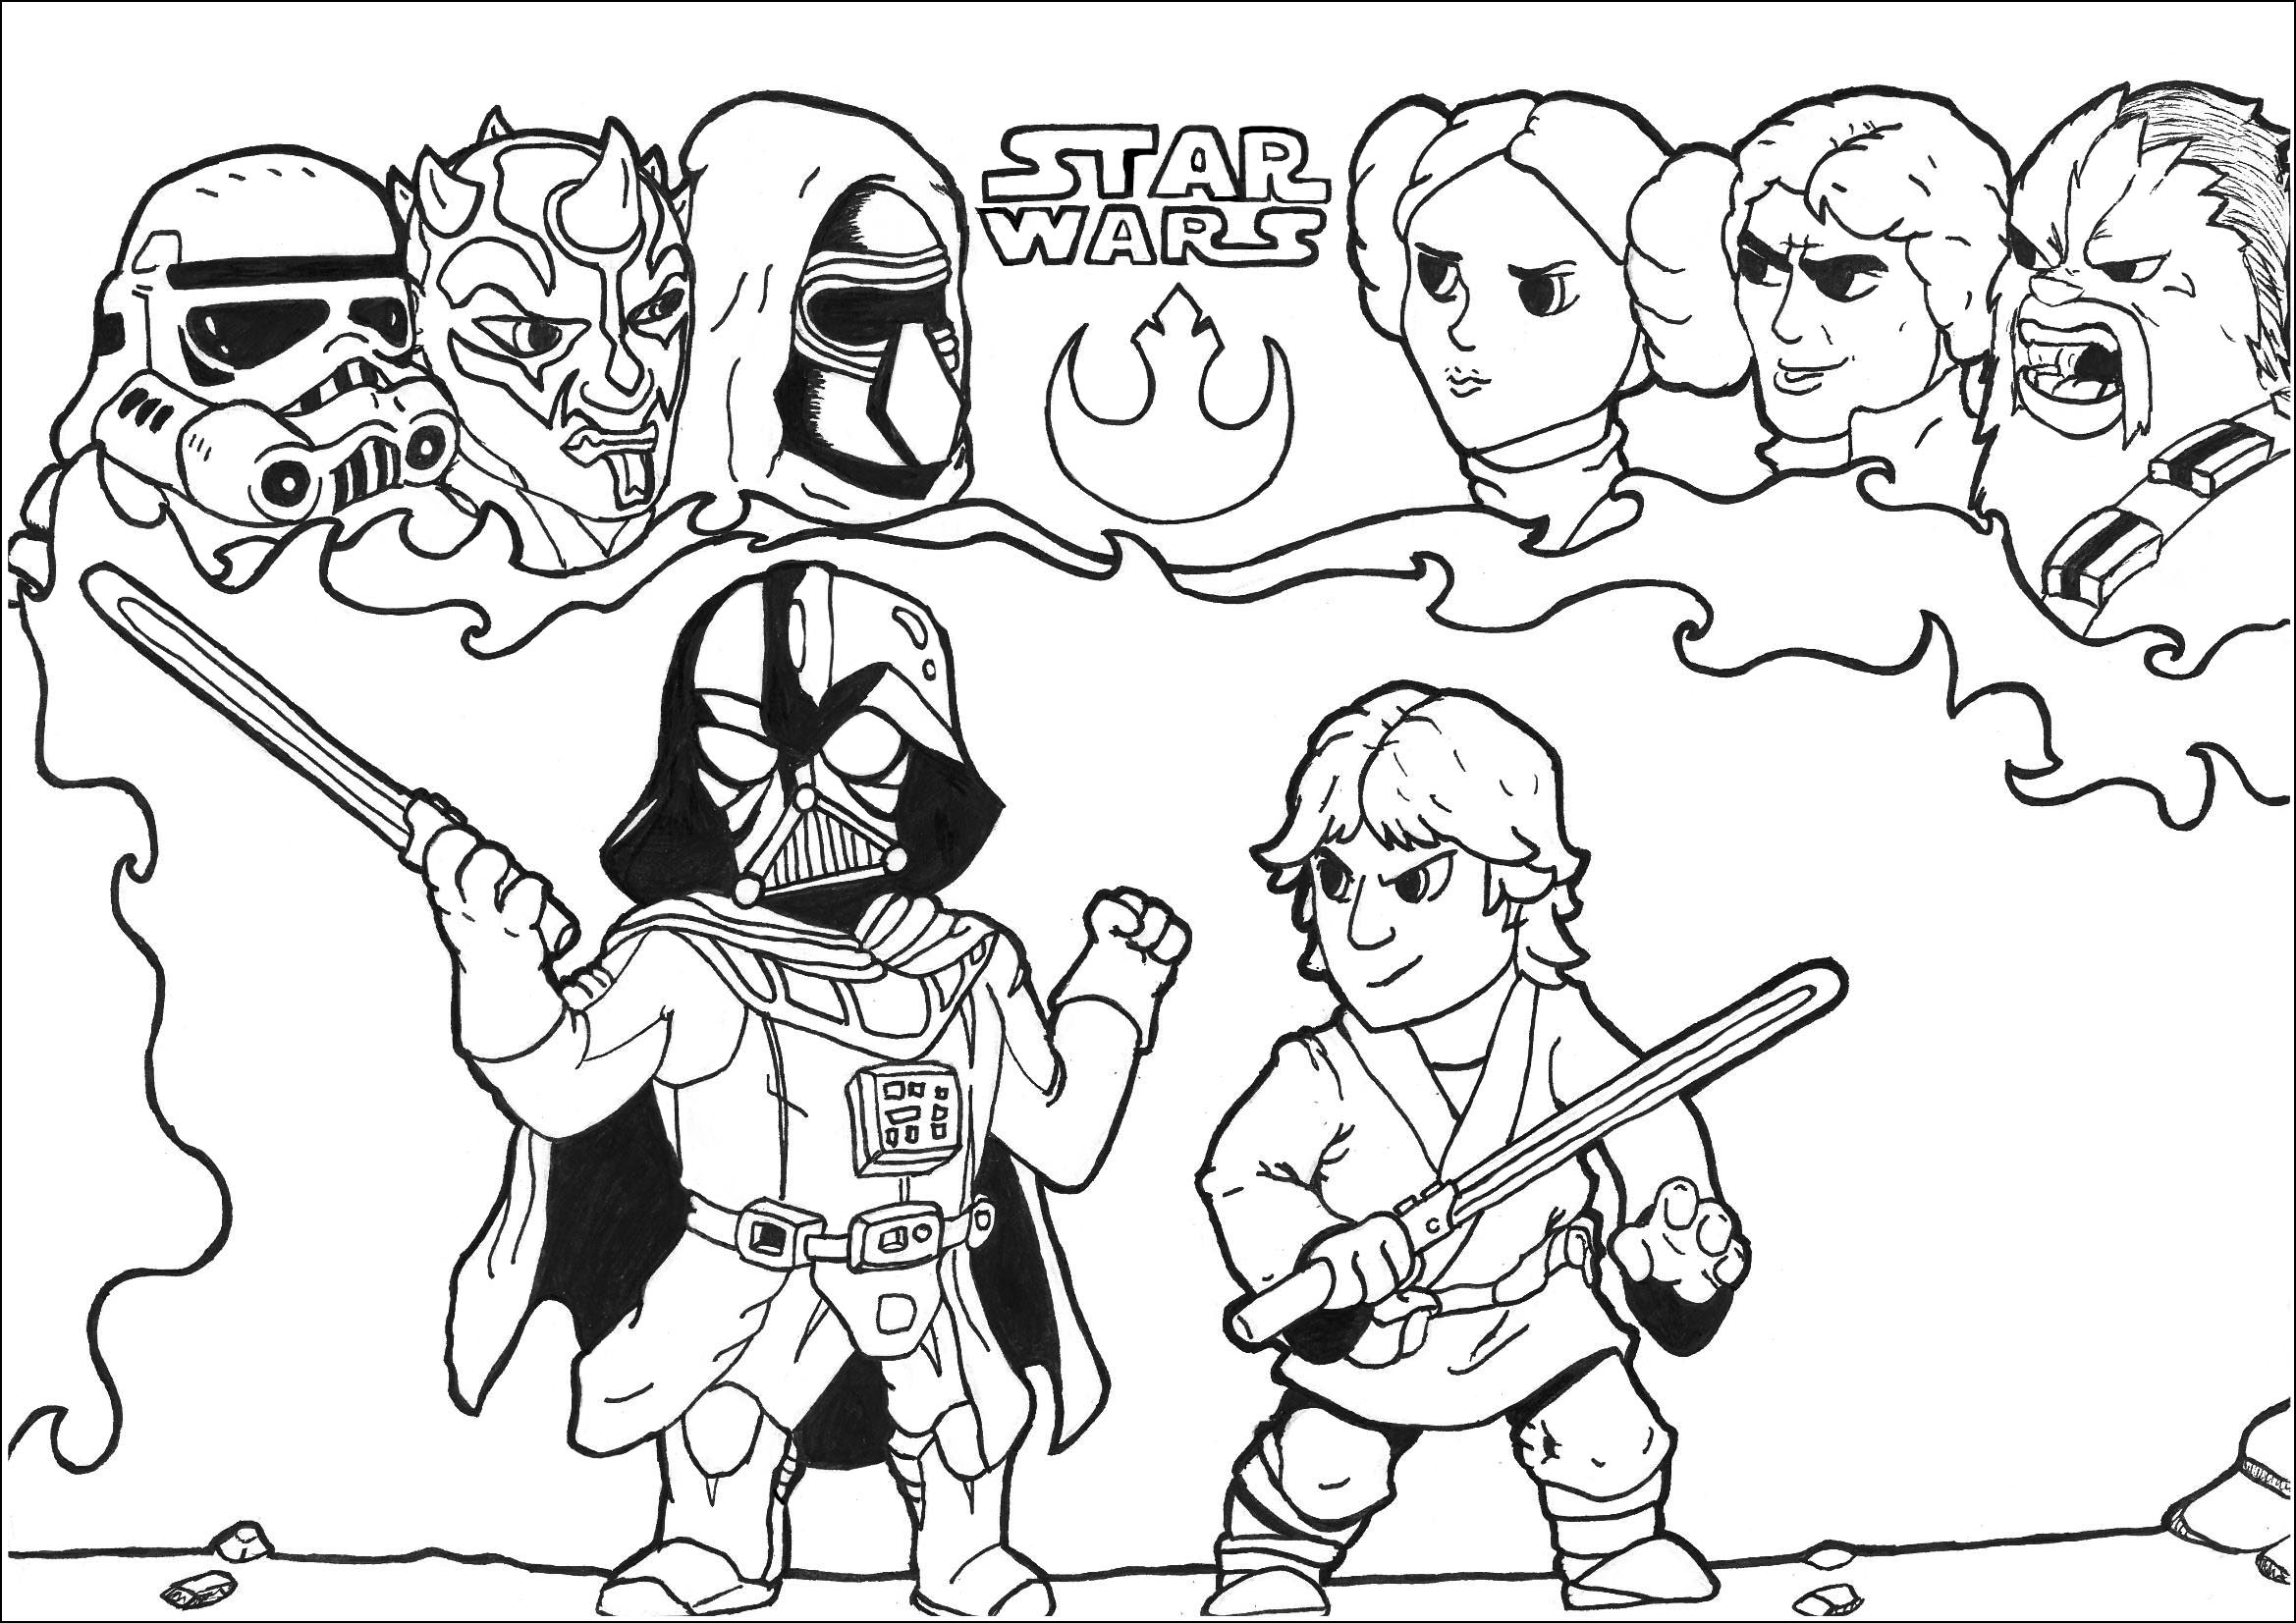 star wars pictures to print and color star wars the force awakens bb 8 coloring pages free color to star wars print pictures and